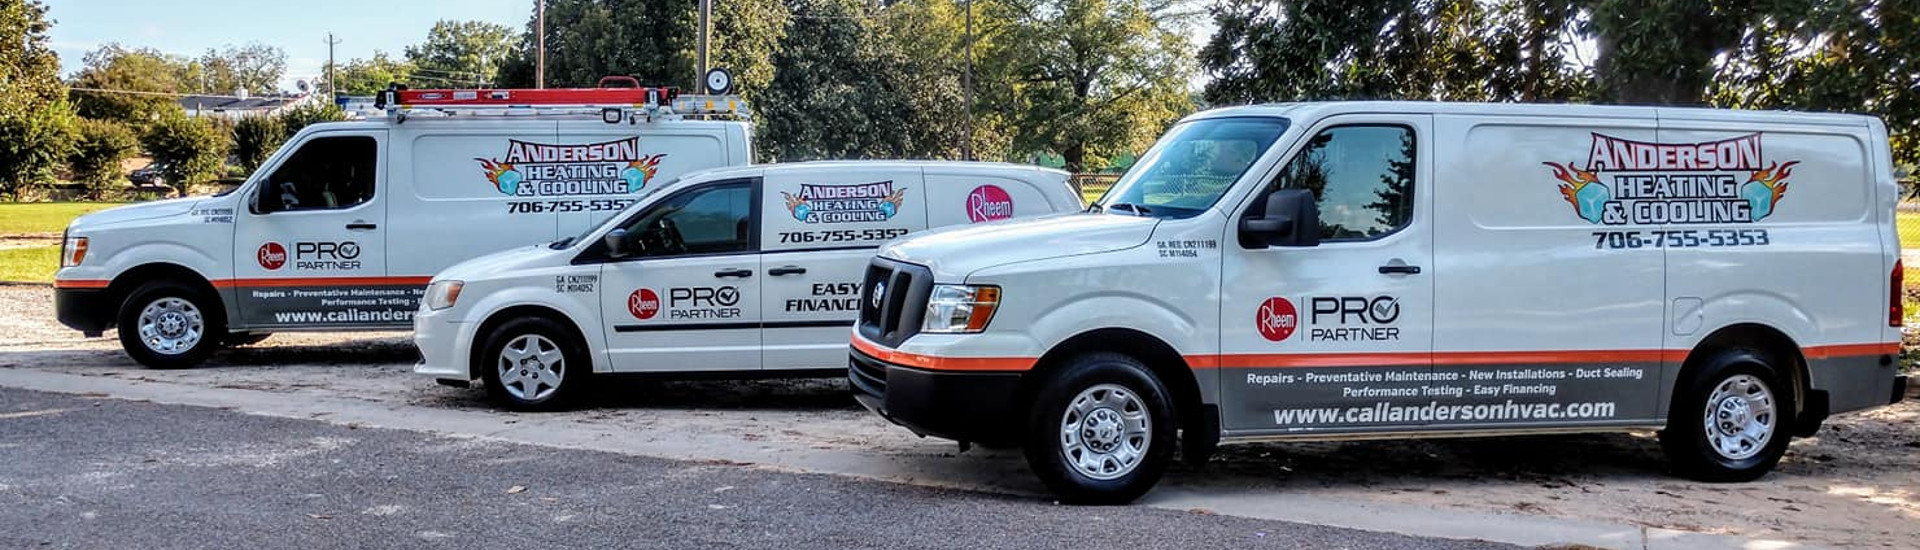 Service Vans | Anderson Heating and Air Conditioning Augusta GA